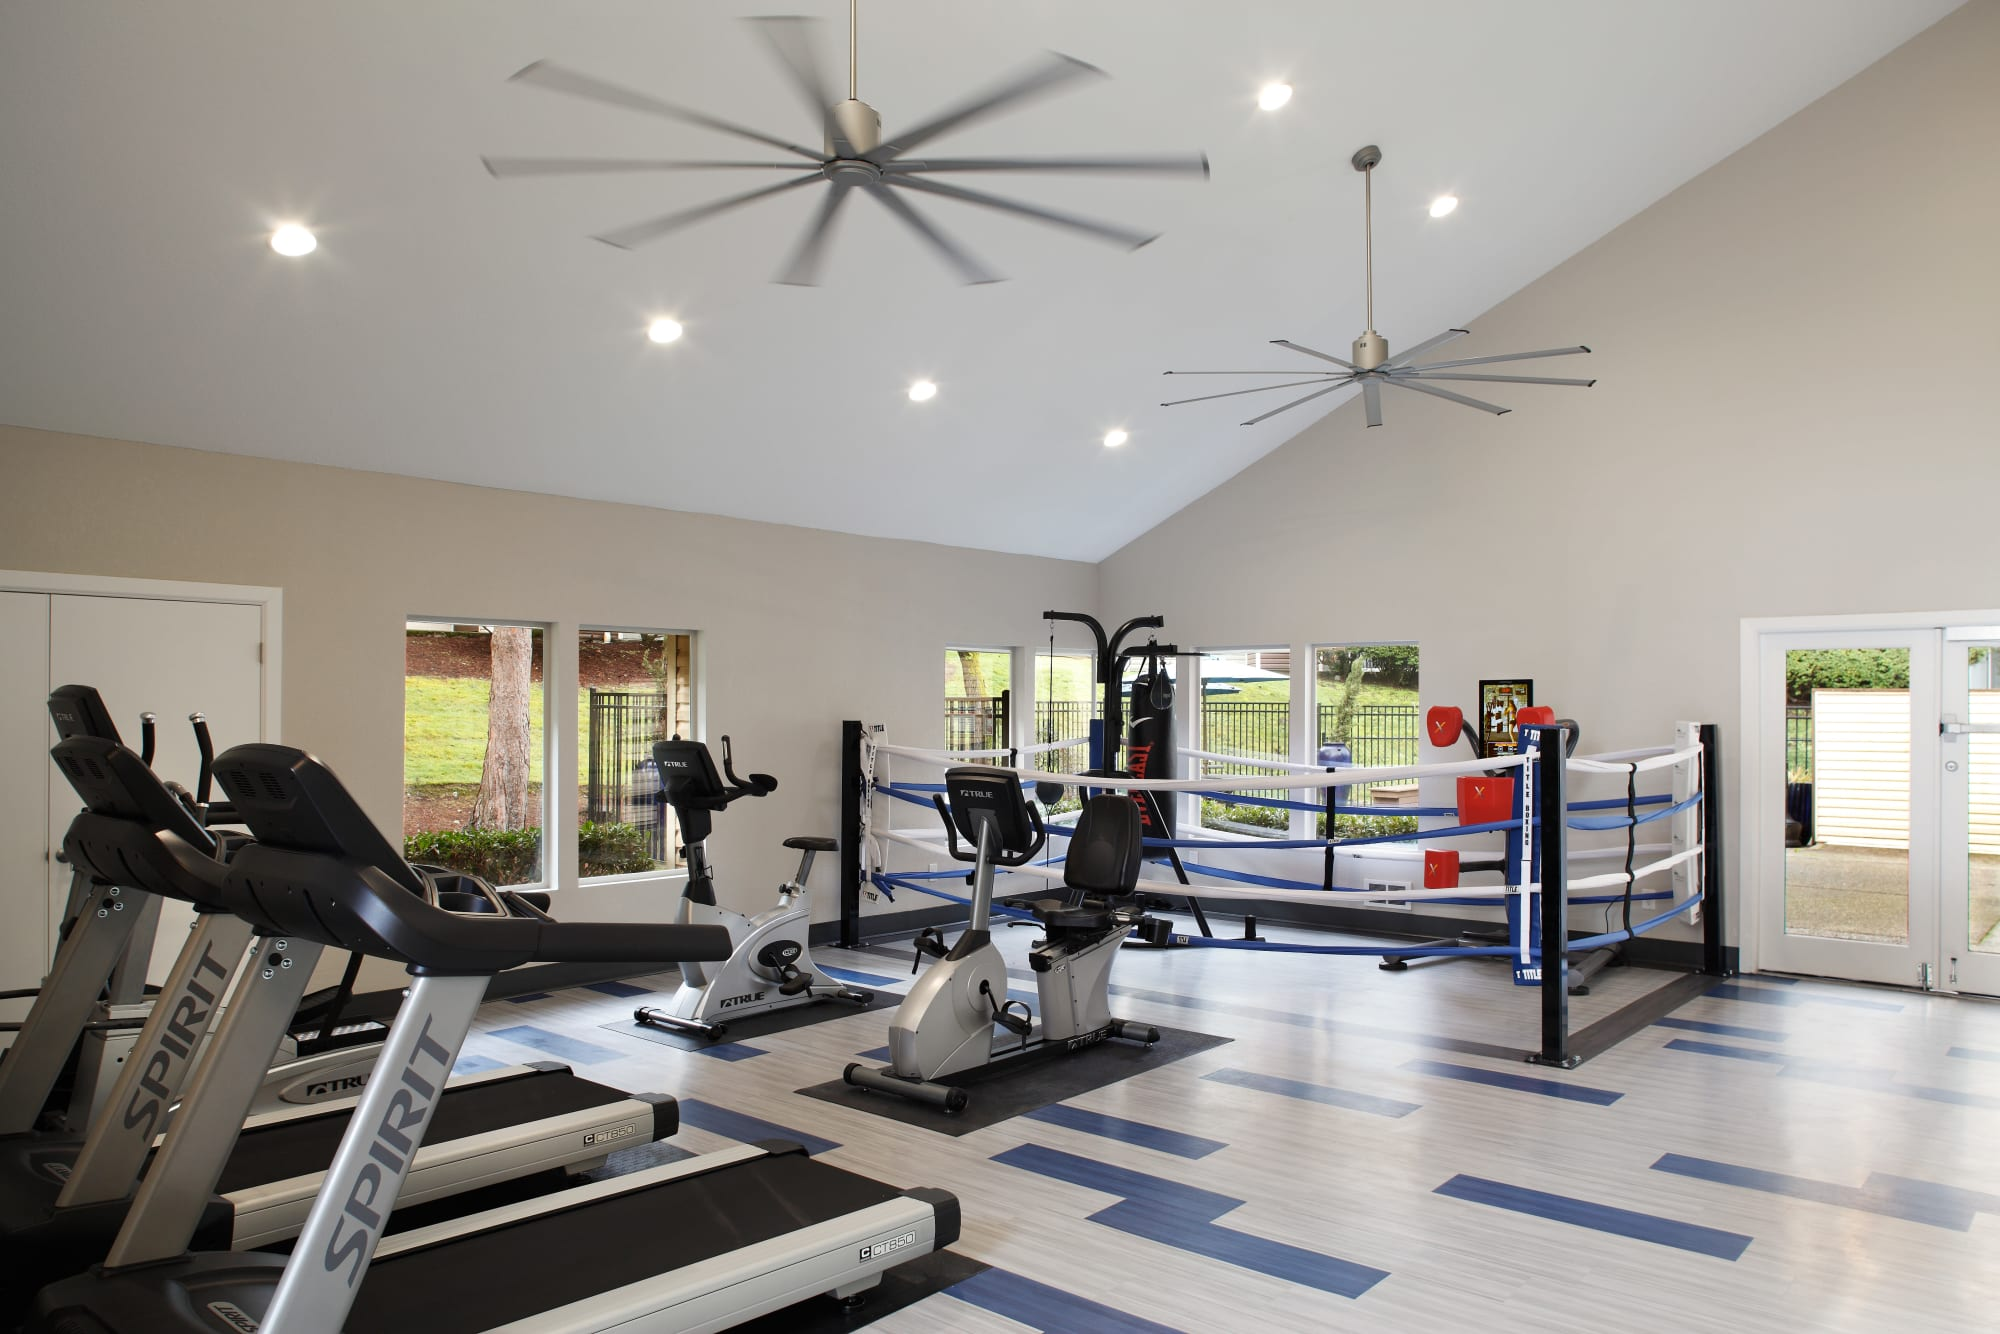 Fitness center with cardio machines and a boxing ring at Park South Apartments in Seattle, Washington